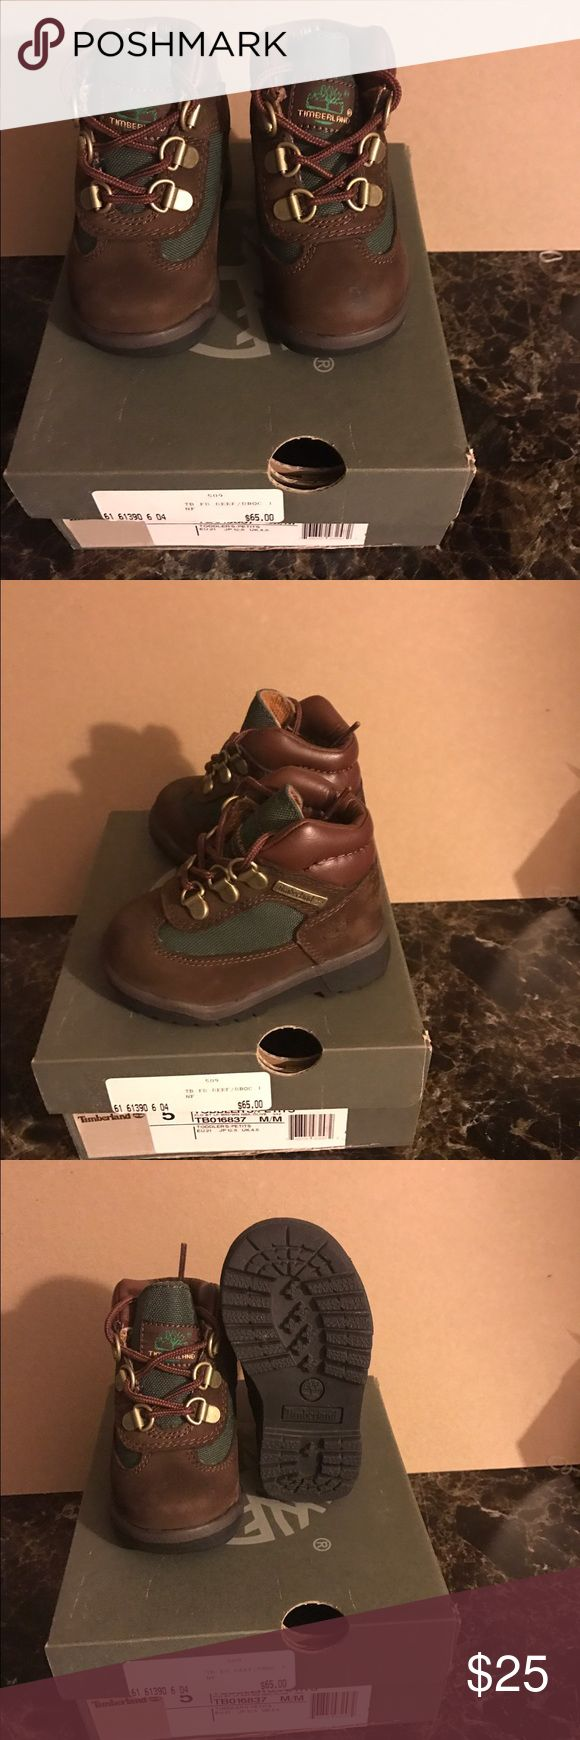 Infant/toddler timberlands boots Beef and brocs toddler timberland boots in great condition Timberland Shoes Boots